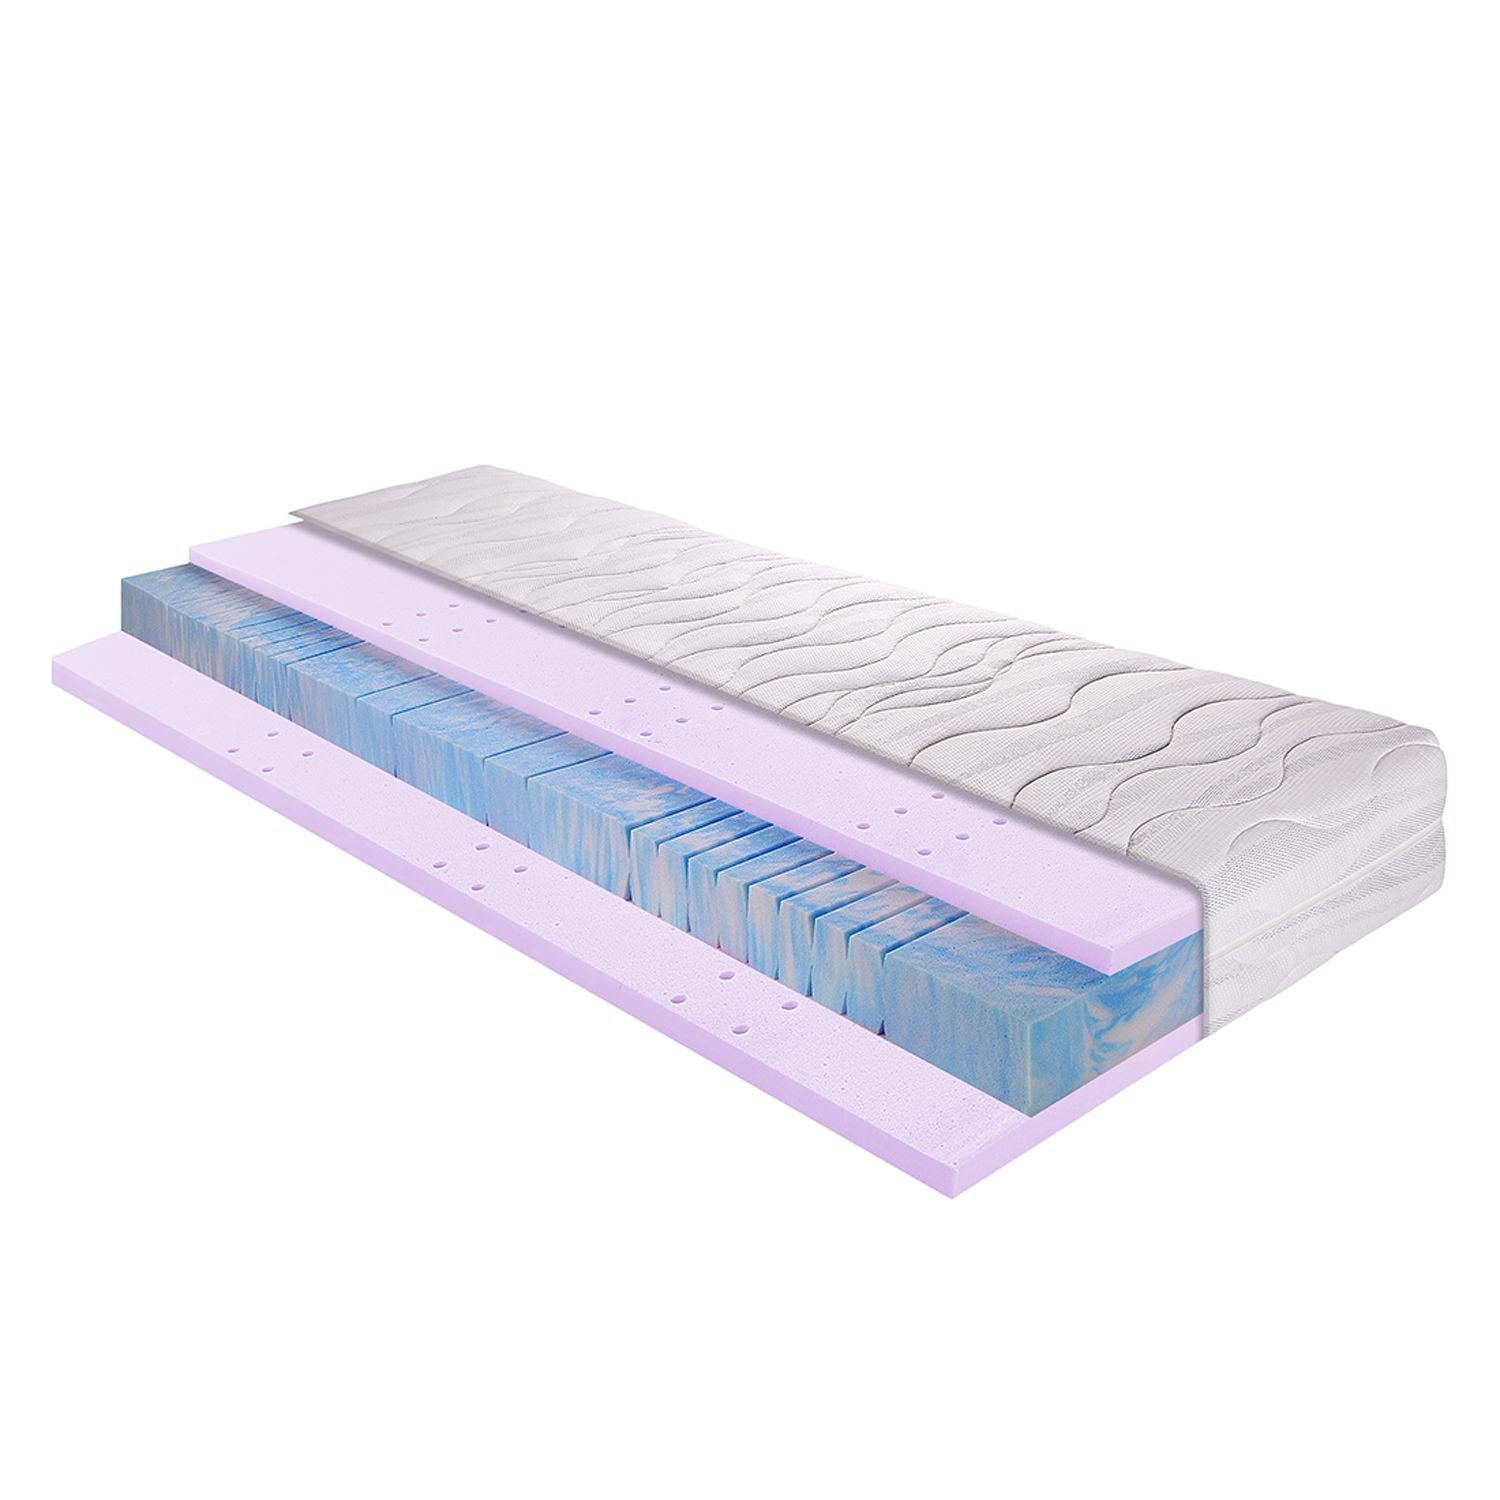 7-Zonen Kaltschaum-Gel-Matratze Sleep Gel 3 - 140 x 200cm - H3 ab 80 kg